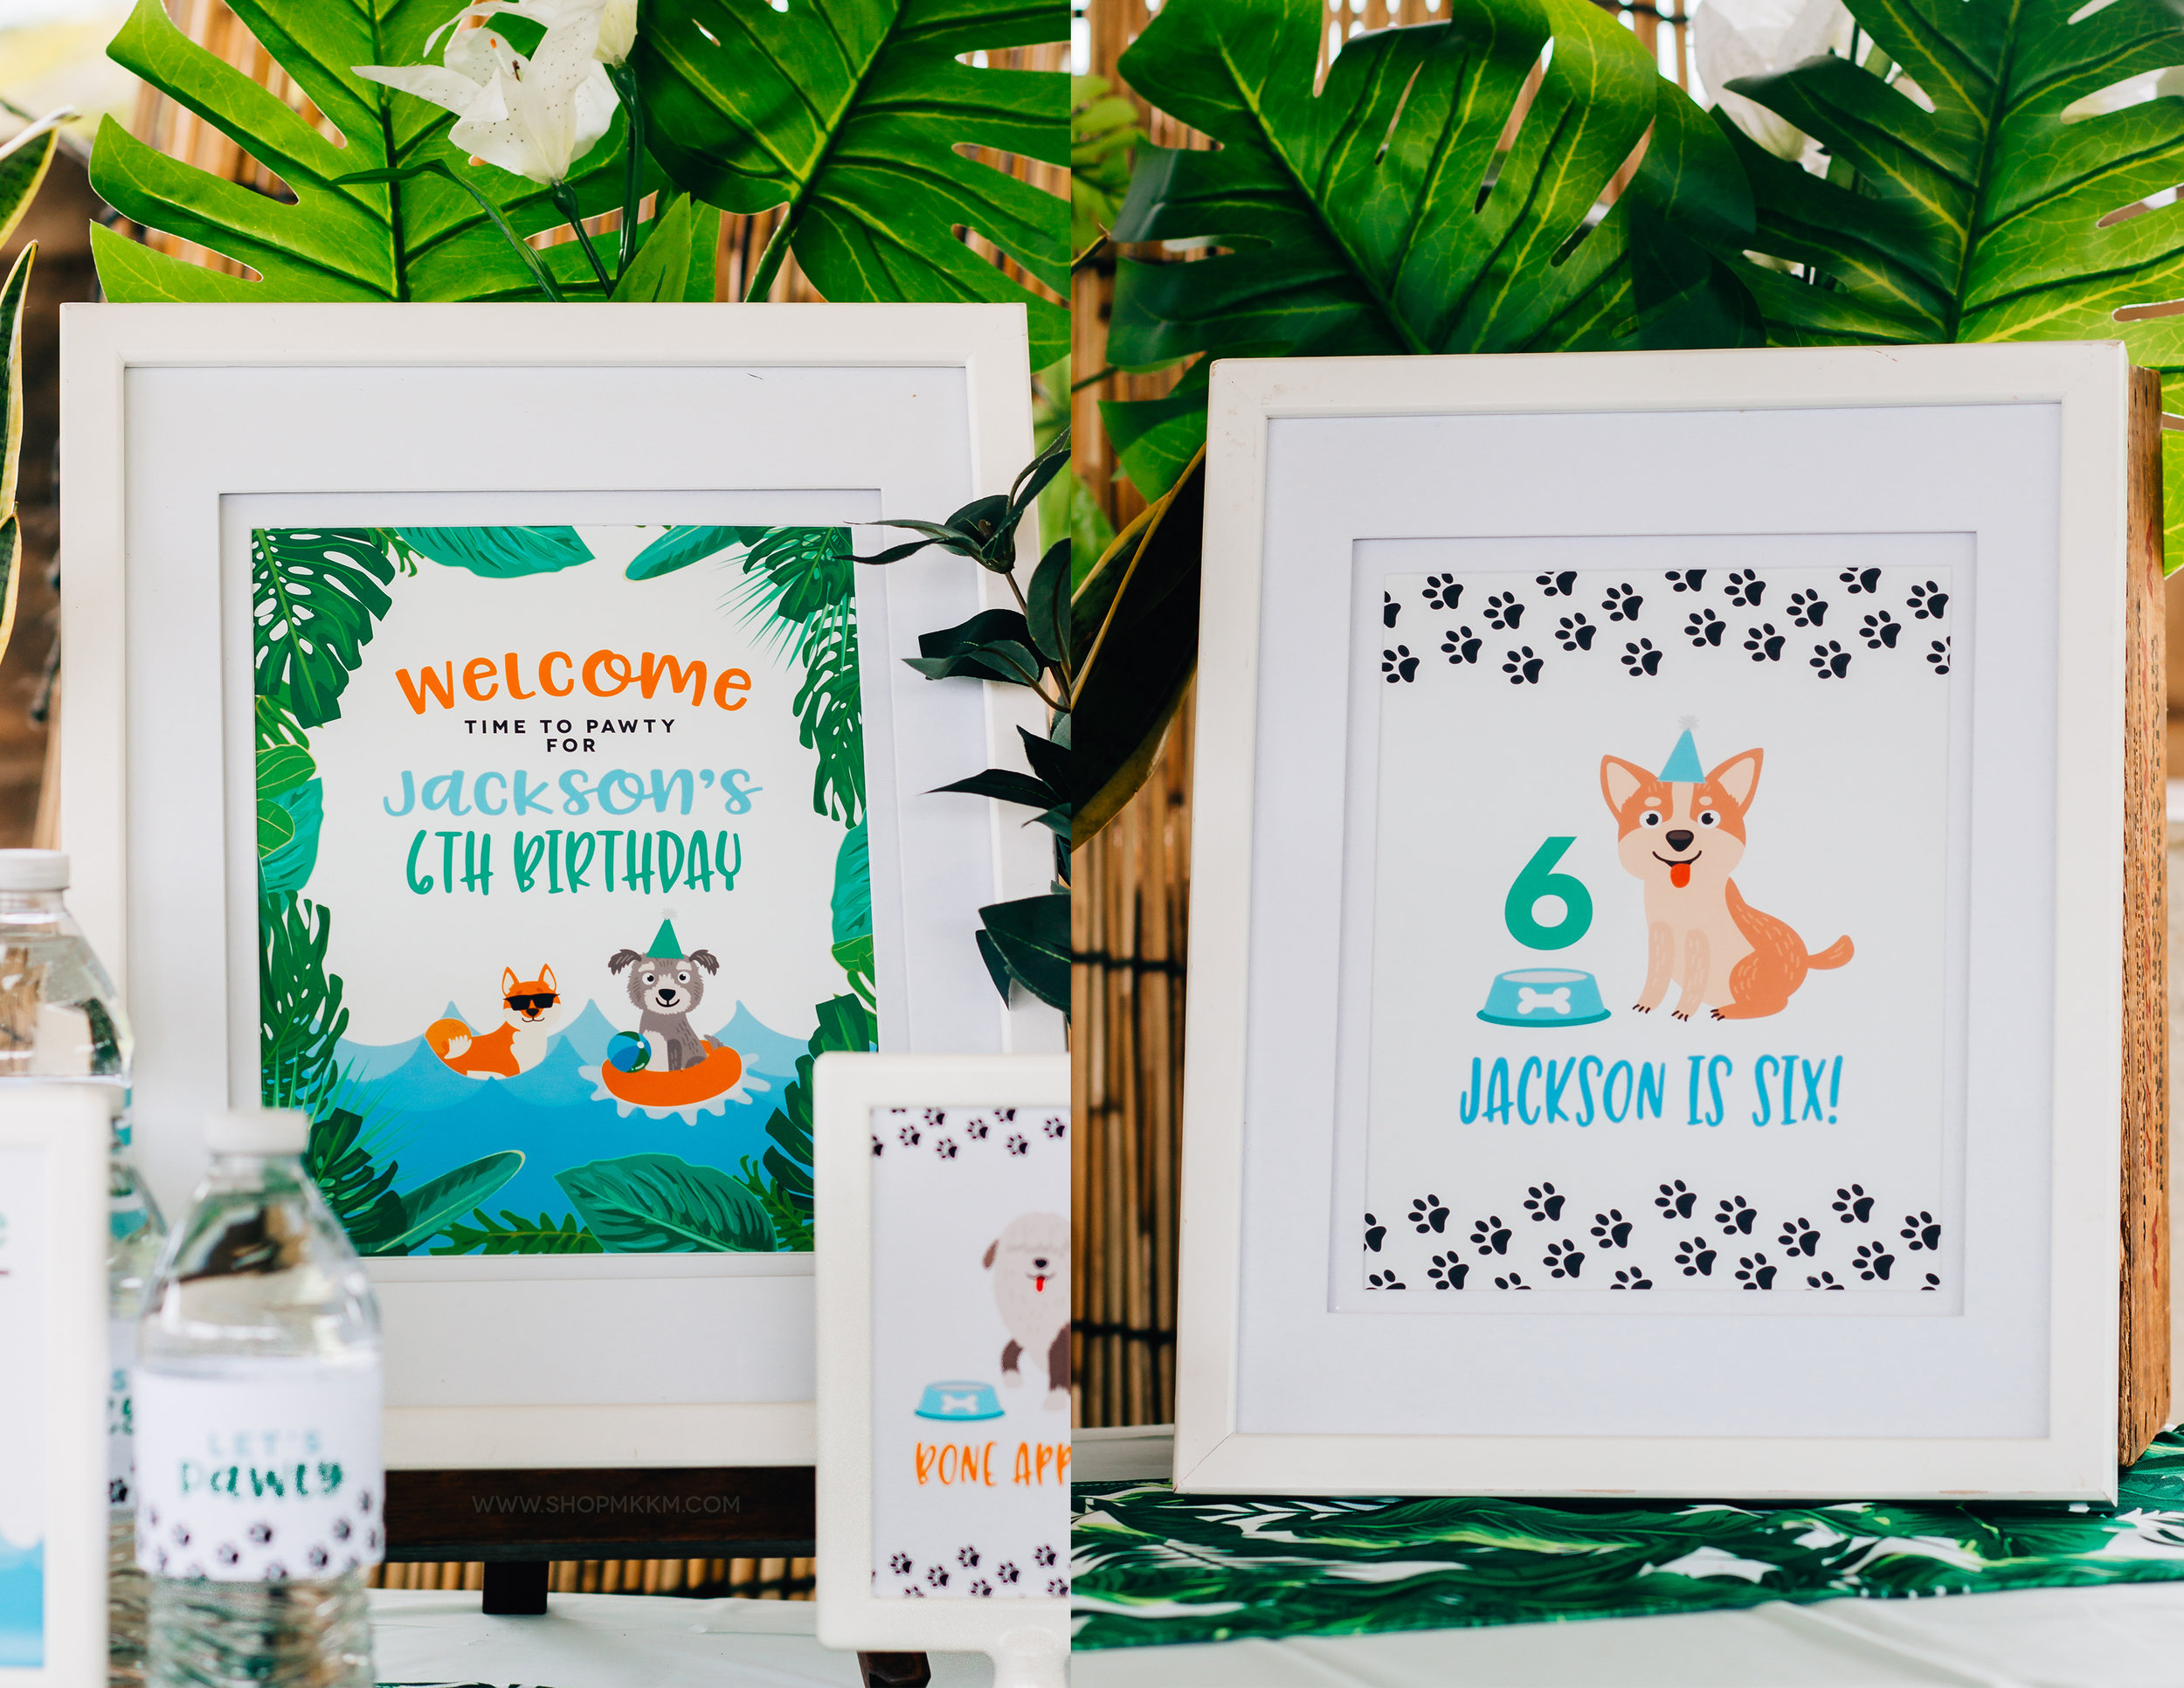 Tropical Puppy Party Signs from shopmkkm.com